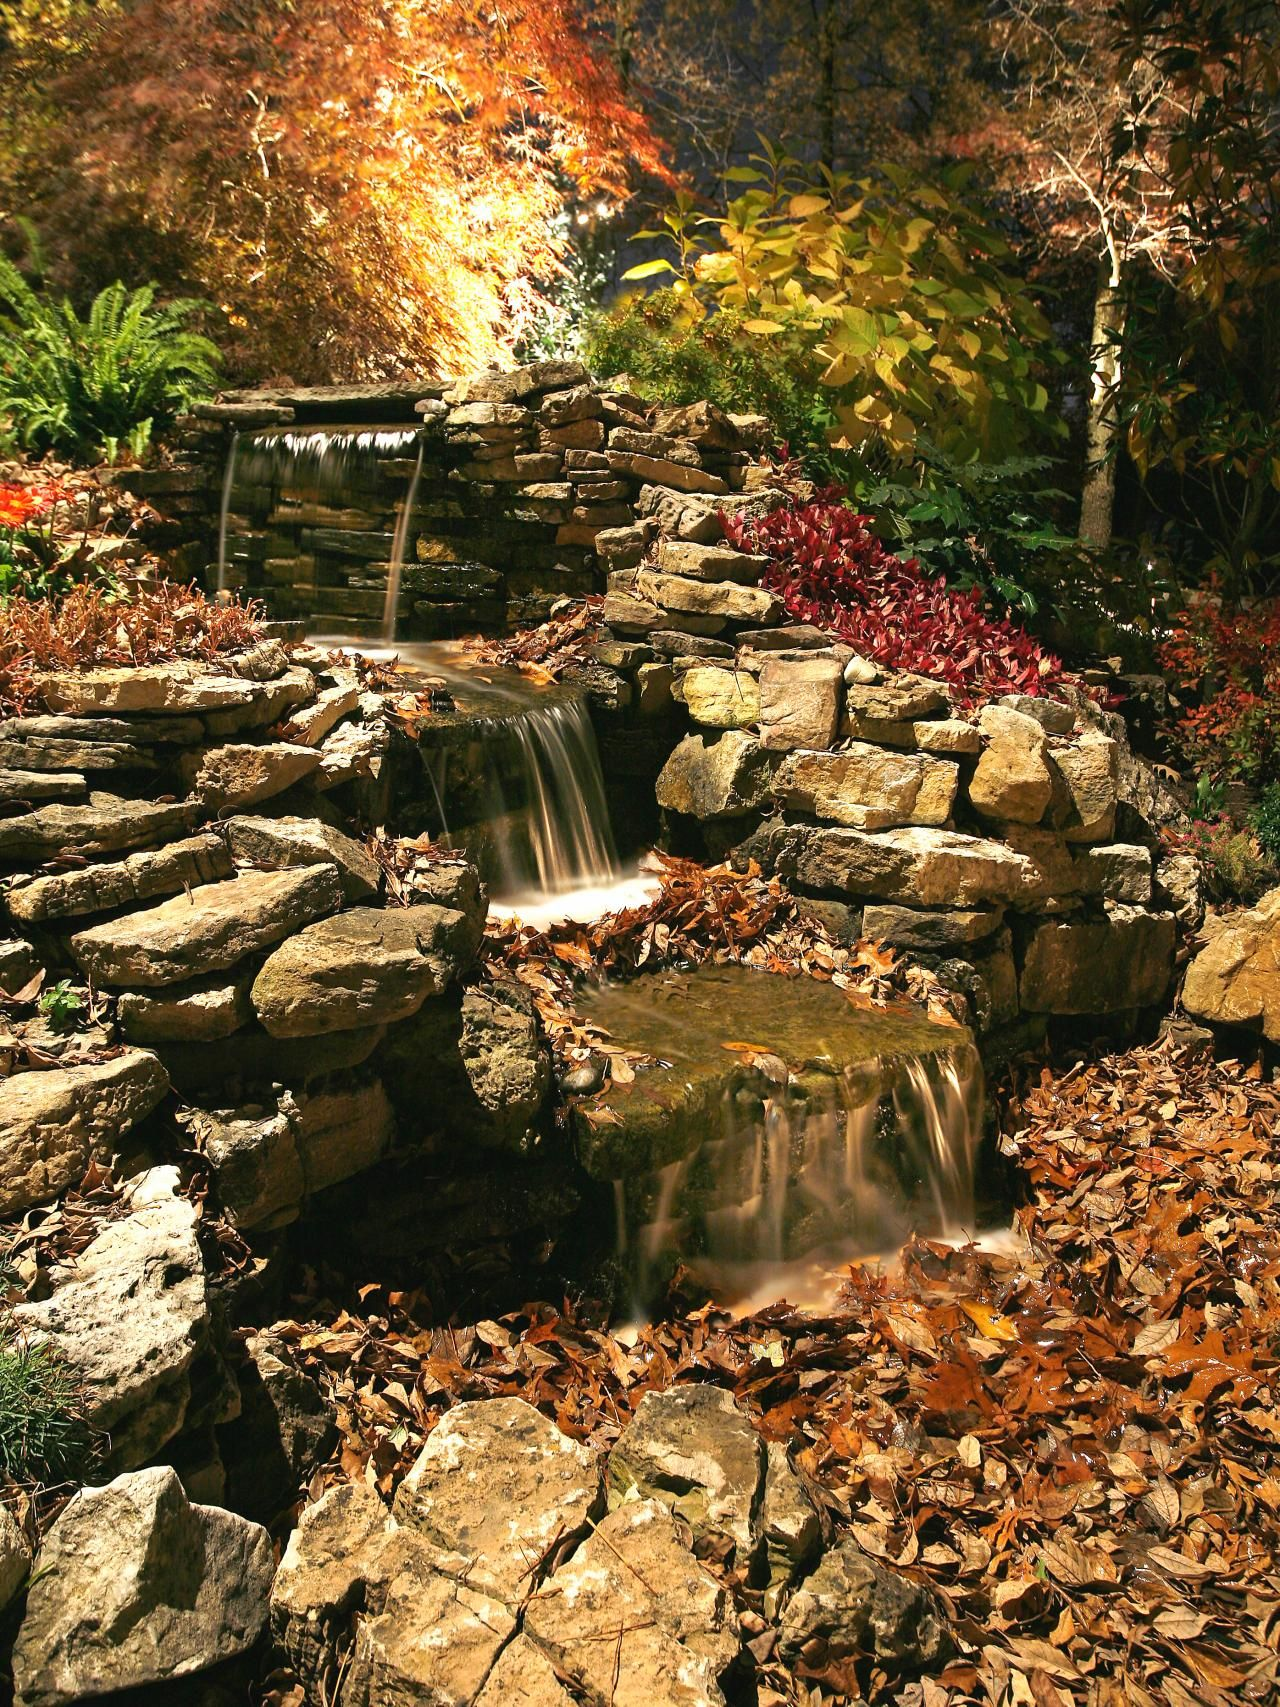 22 Landscape Lighting Ideas Home Garden Water Feature Wiring Outdoor Patio Lights Diy Electrical How Tos Light Fixtures Ceiling Fans Safety